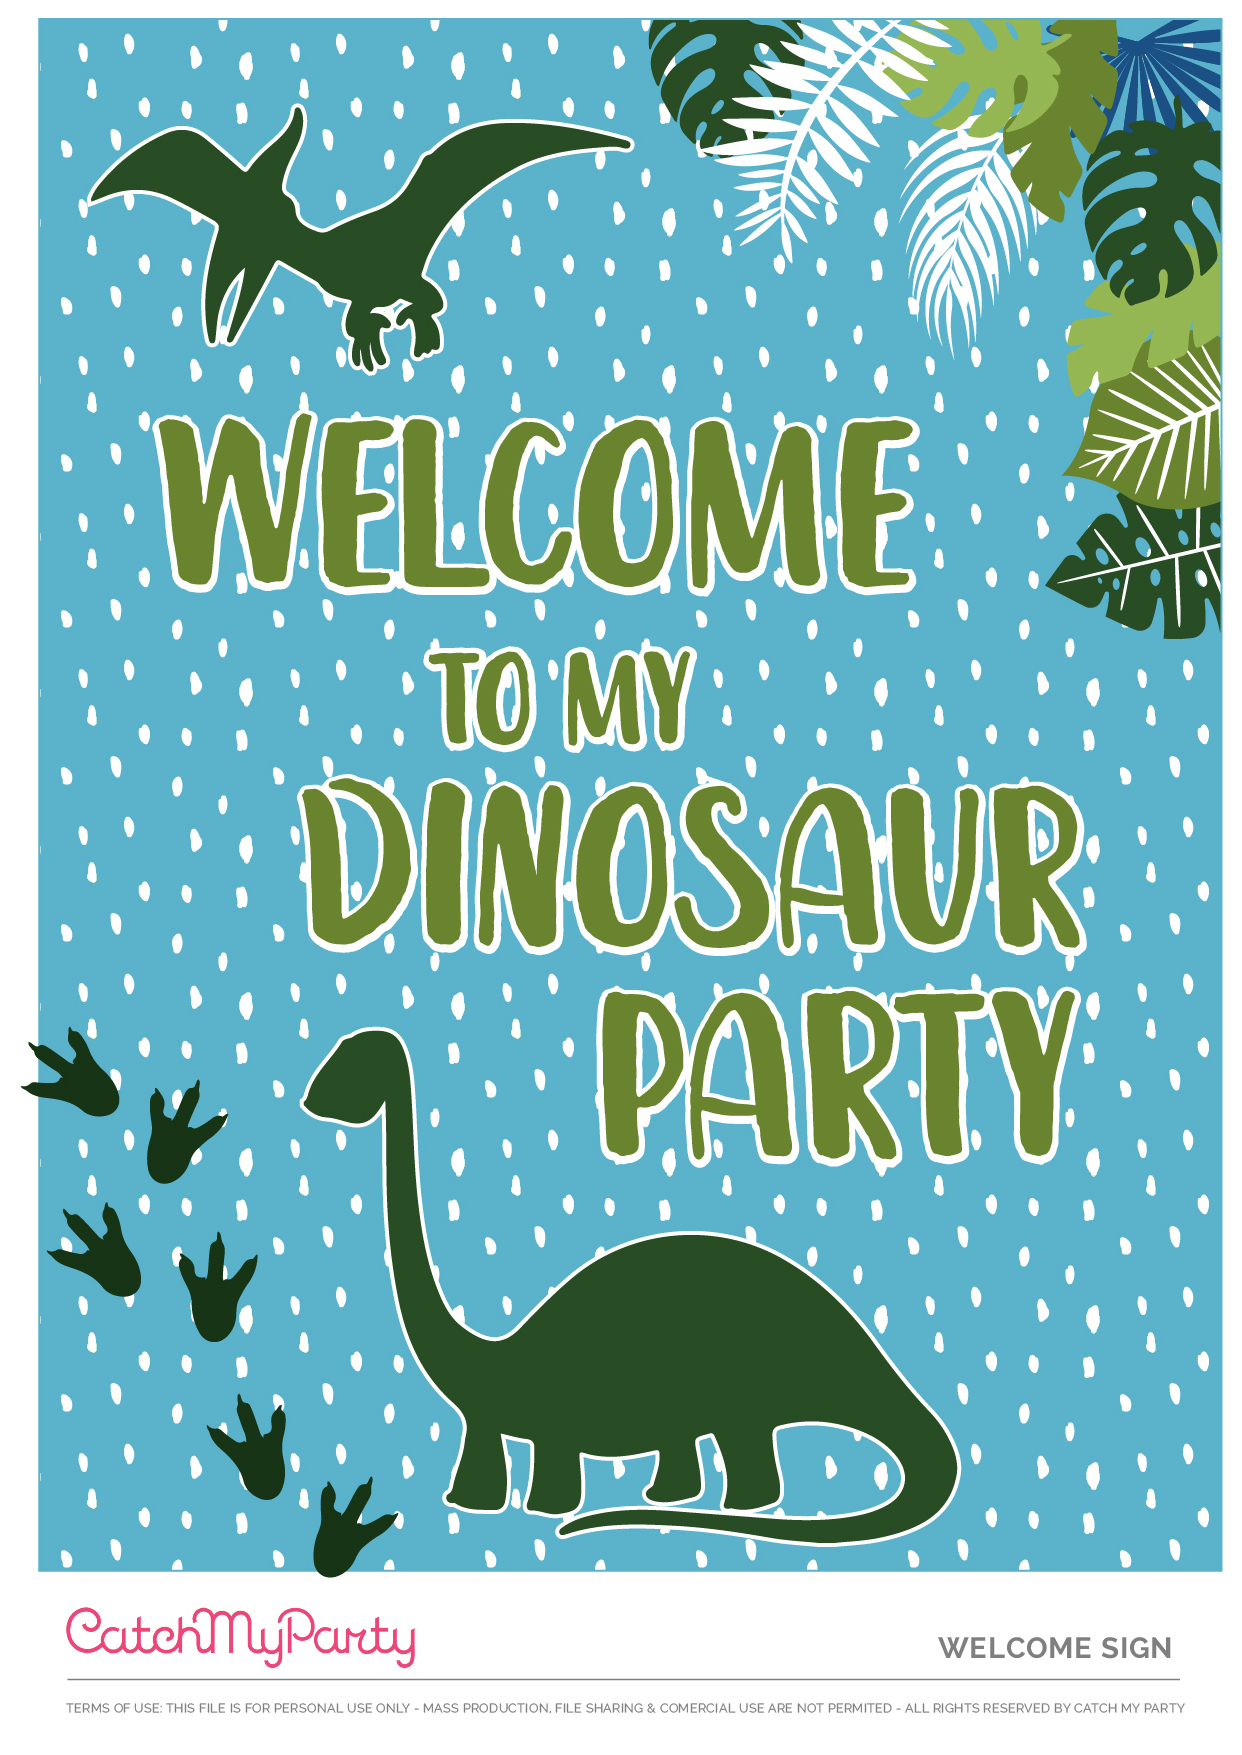 Download These Free Dinosaur Birthday Party Printables Now